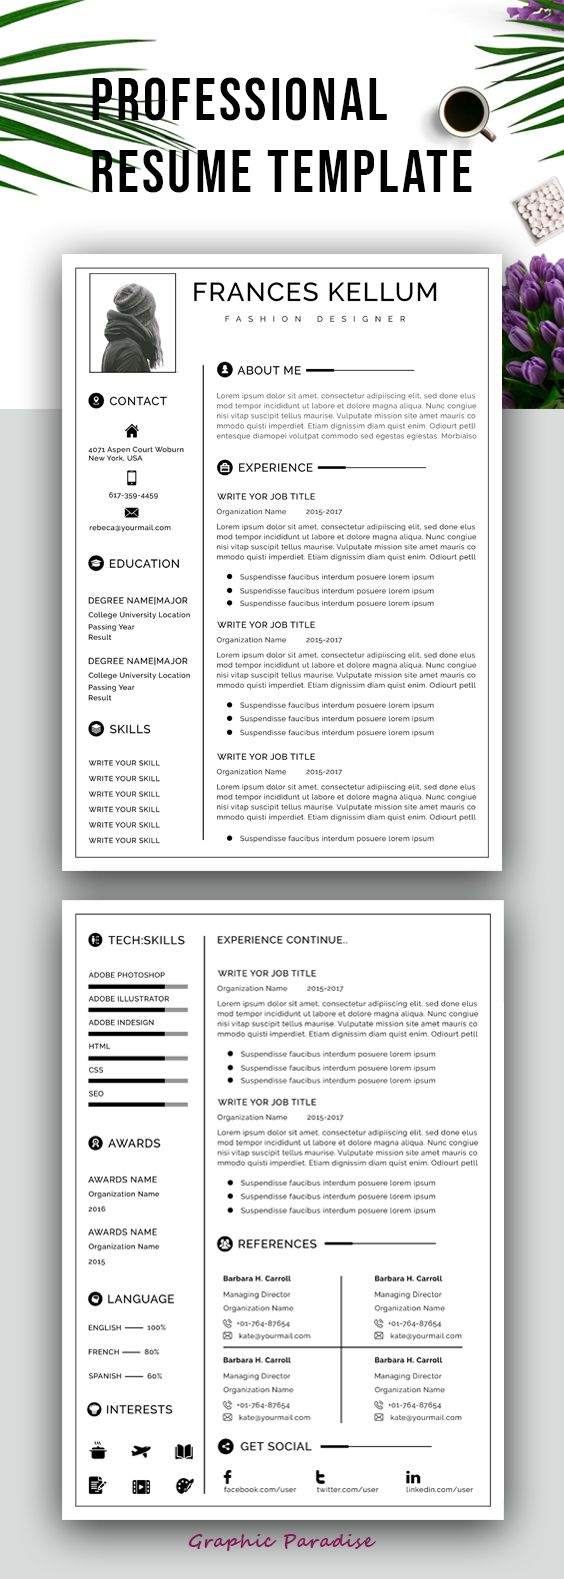 5126 best RESUME | CV | LEBENSLAUF images on Pinterest | Resume ...